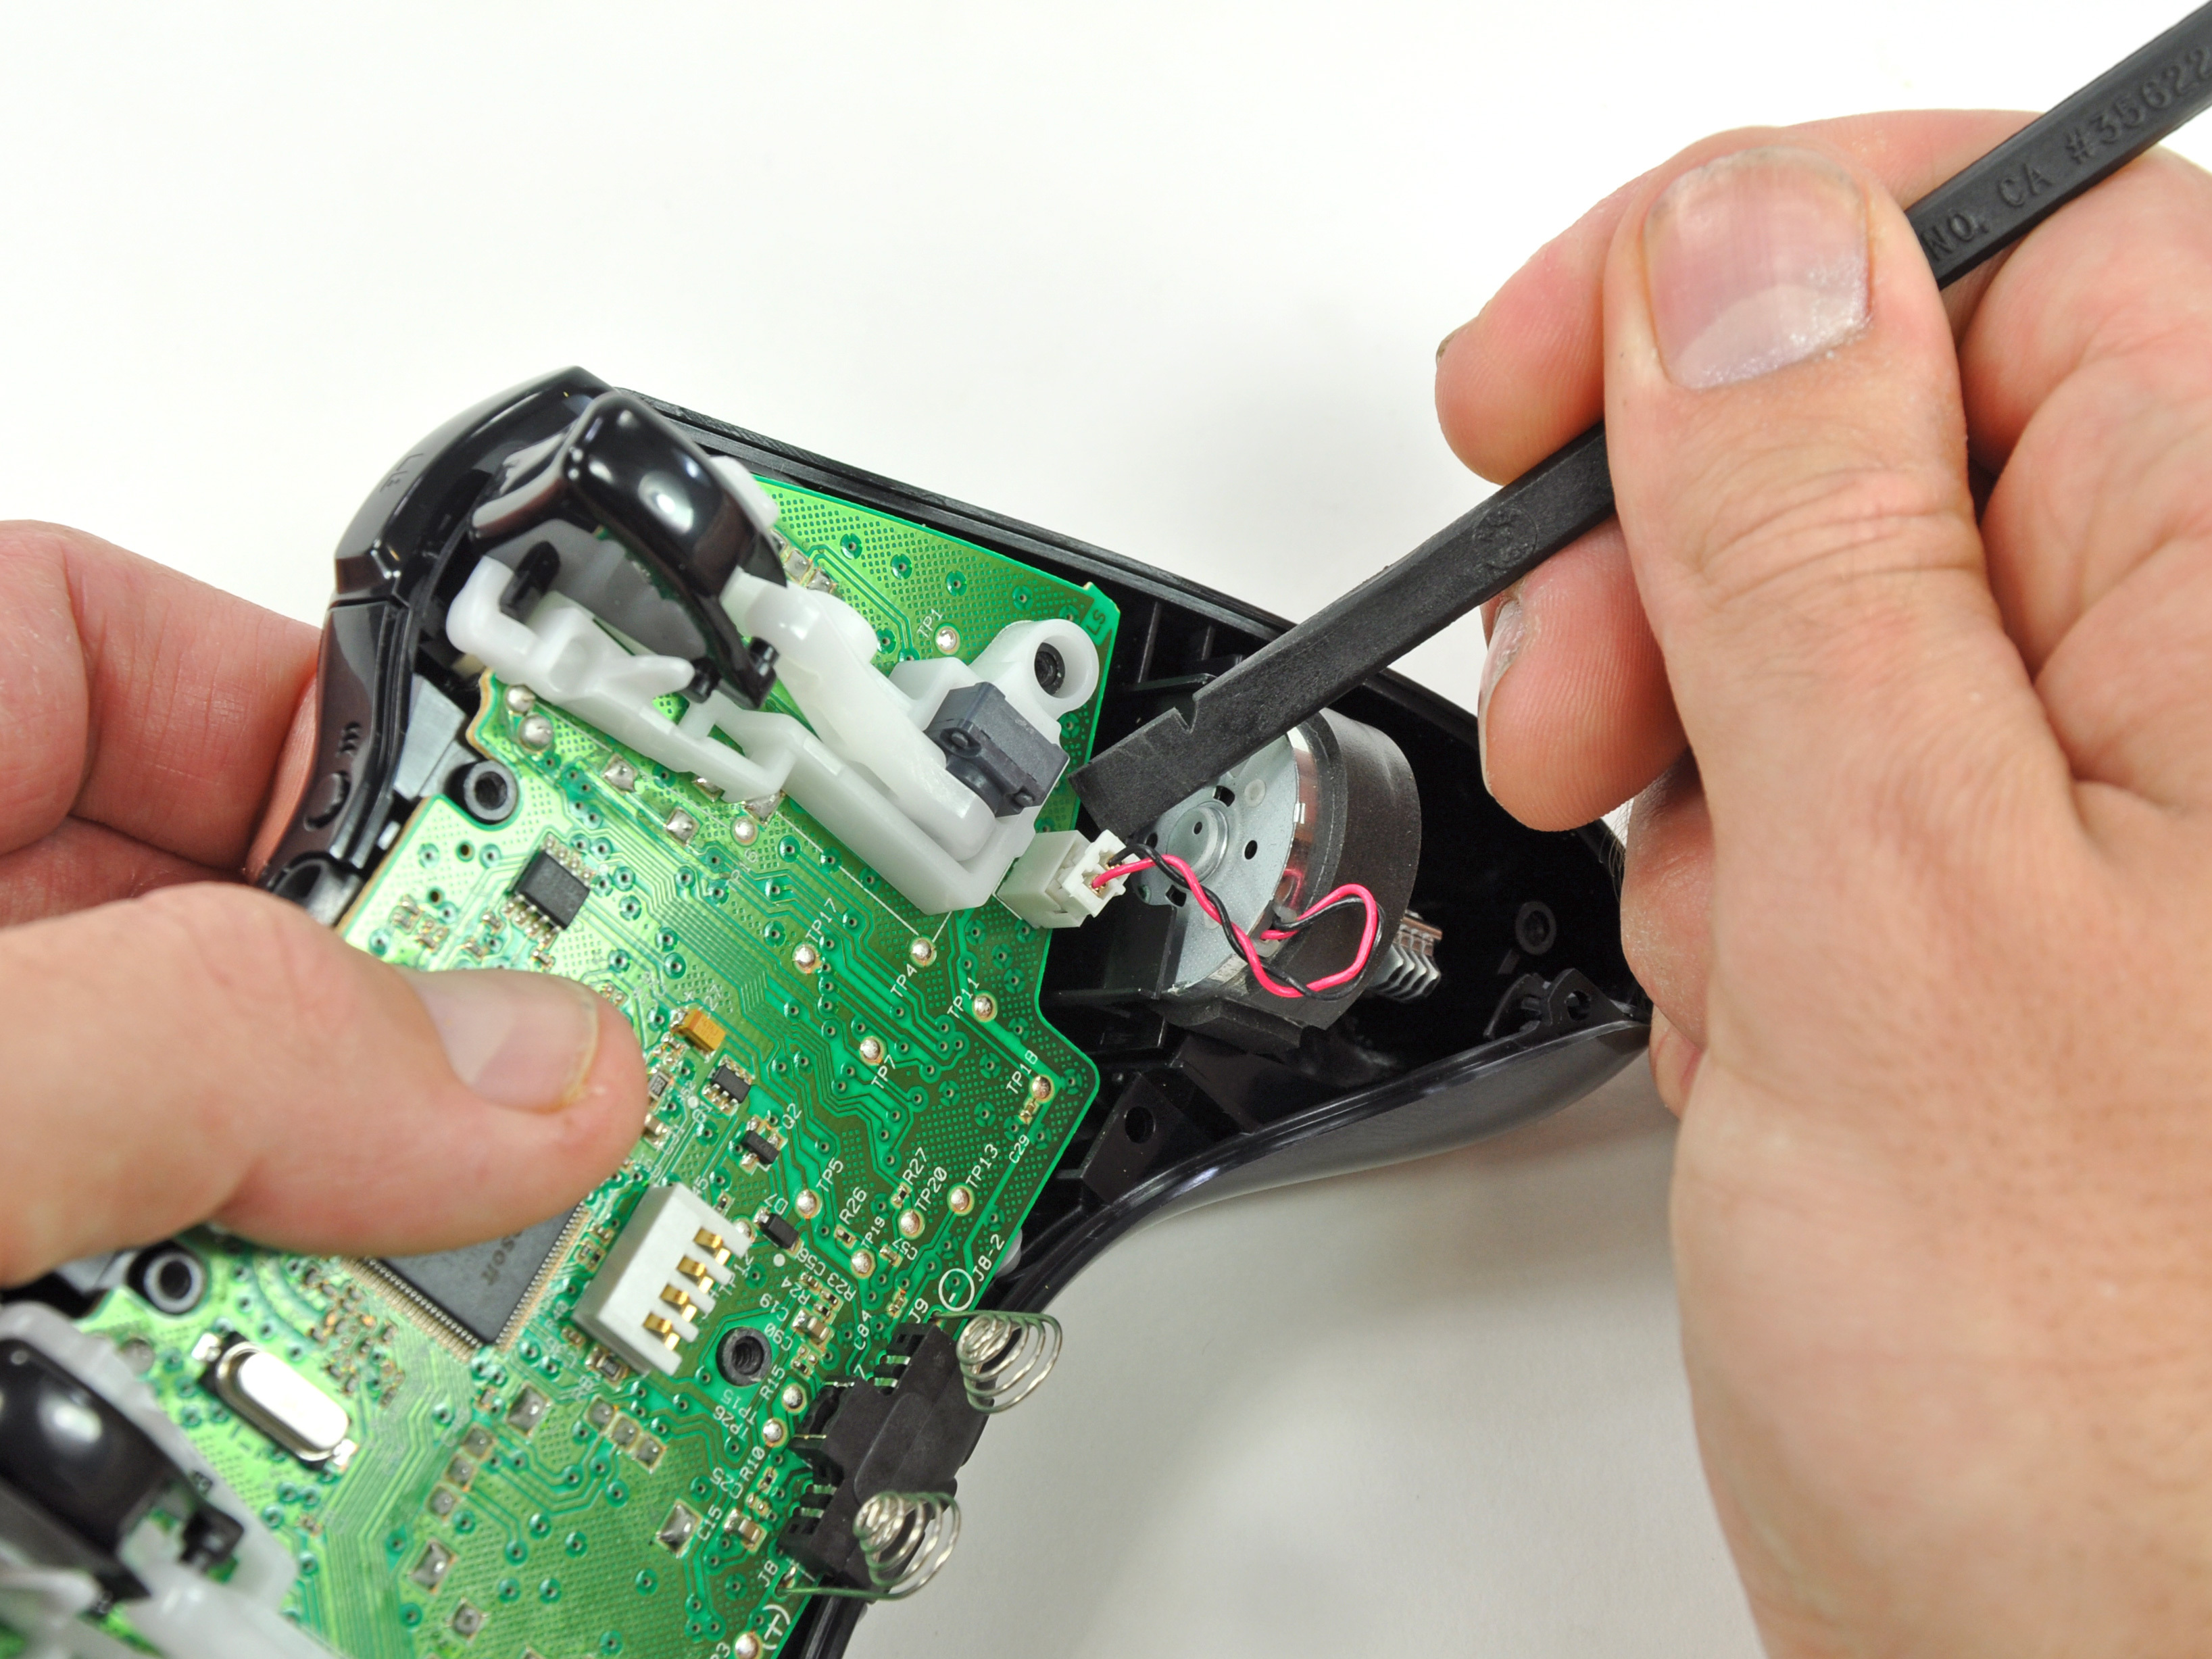 PS4/Xbox One Controller Bumper/Trigger Replacement - Repairs